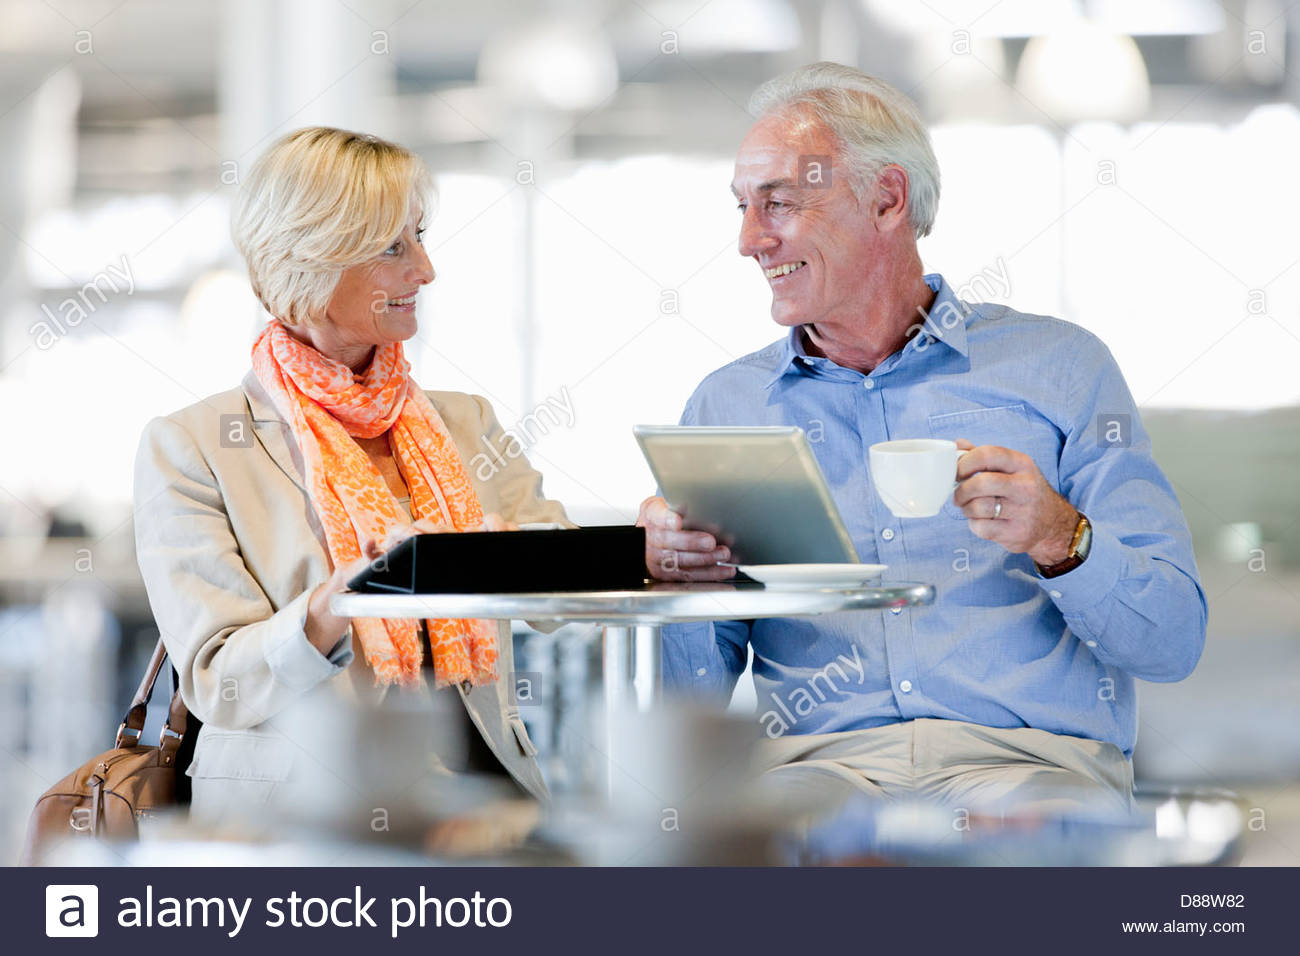 Smiling couple using digital tablets at cafe table Stock Photo